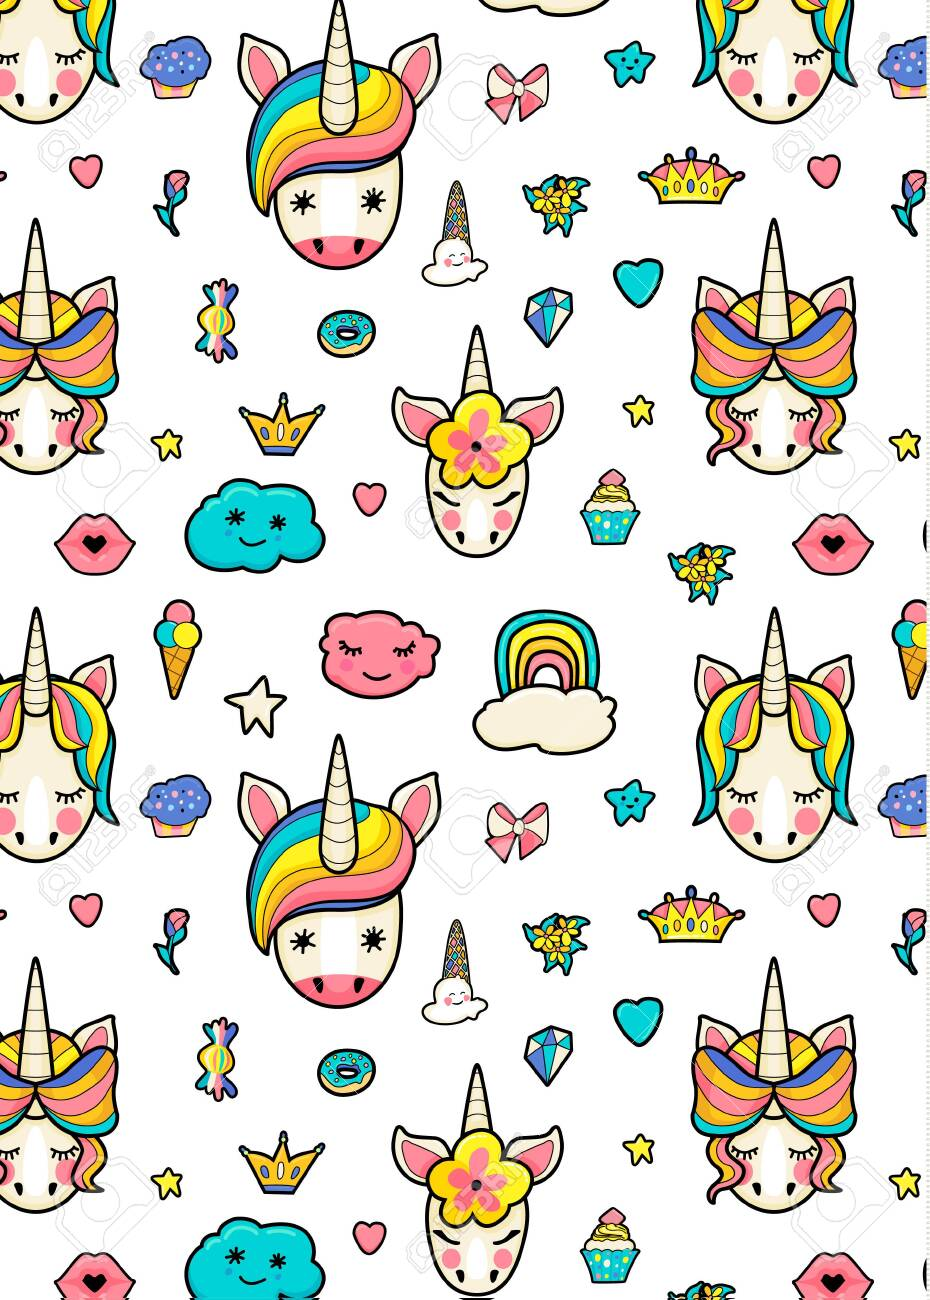 Pattern with cute faces of unicorns, ice cream, stars, hearts, donut, rainbow, crowns, cupcake. Dreaming unicorns in bright colors - 122899685